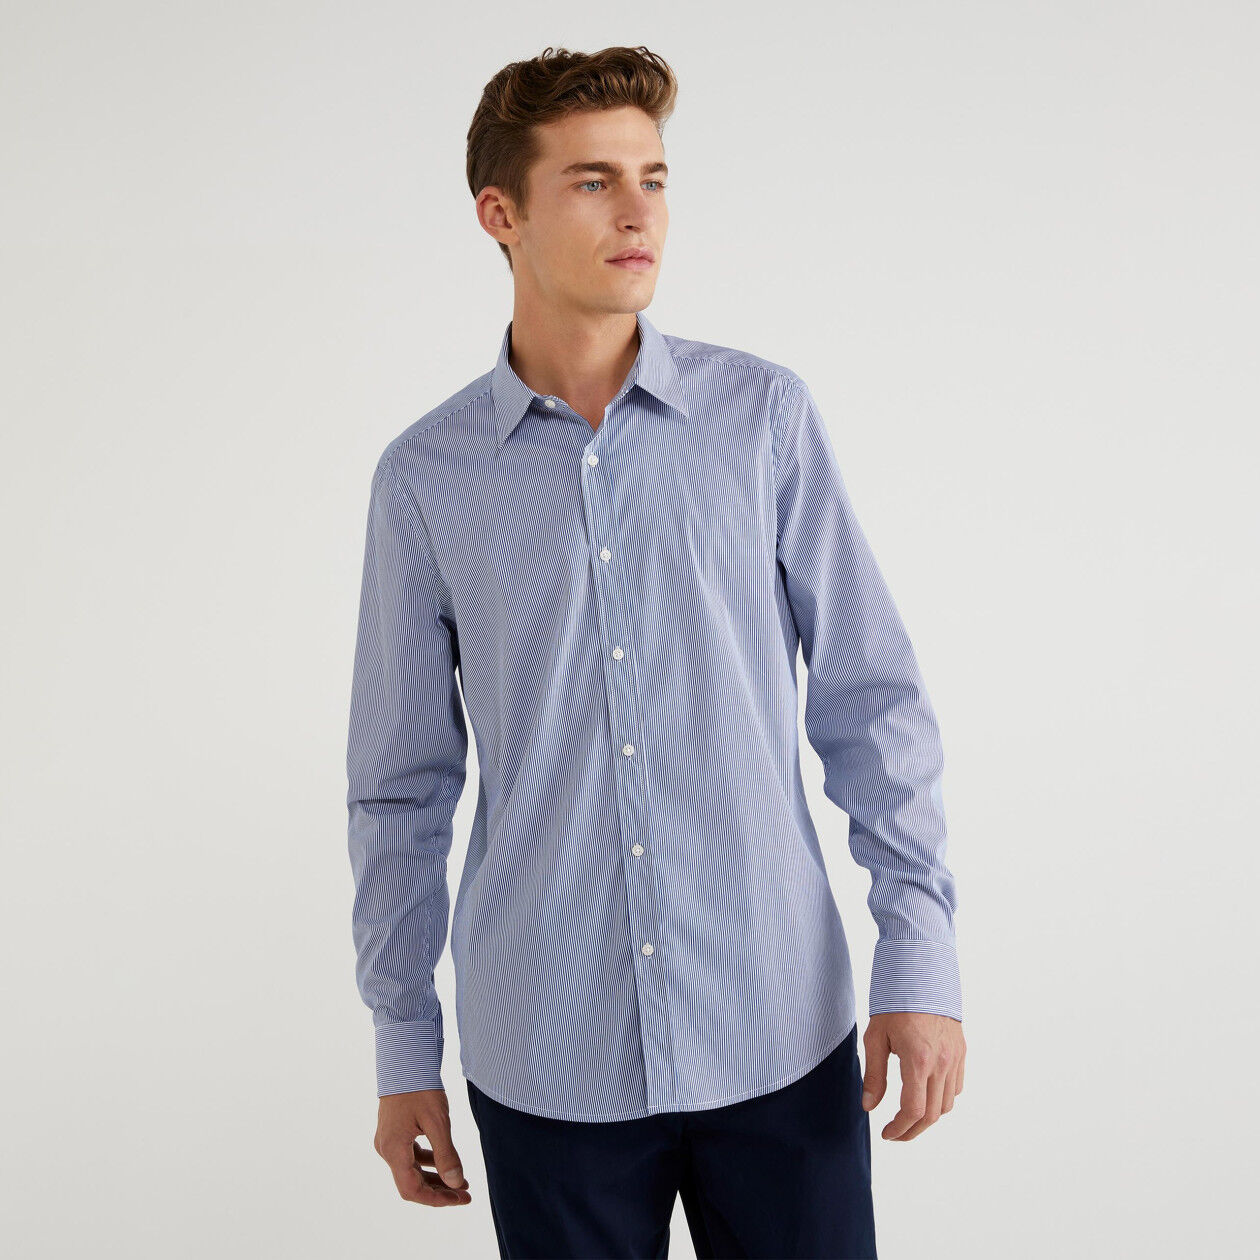 Camisa slim fit de rayas